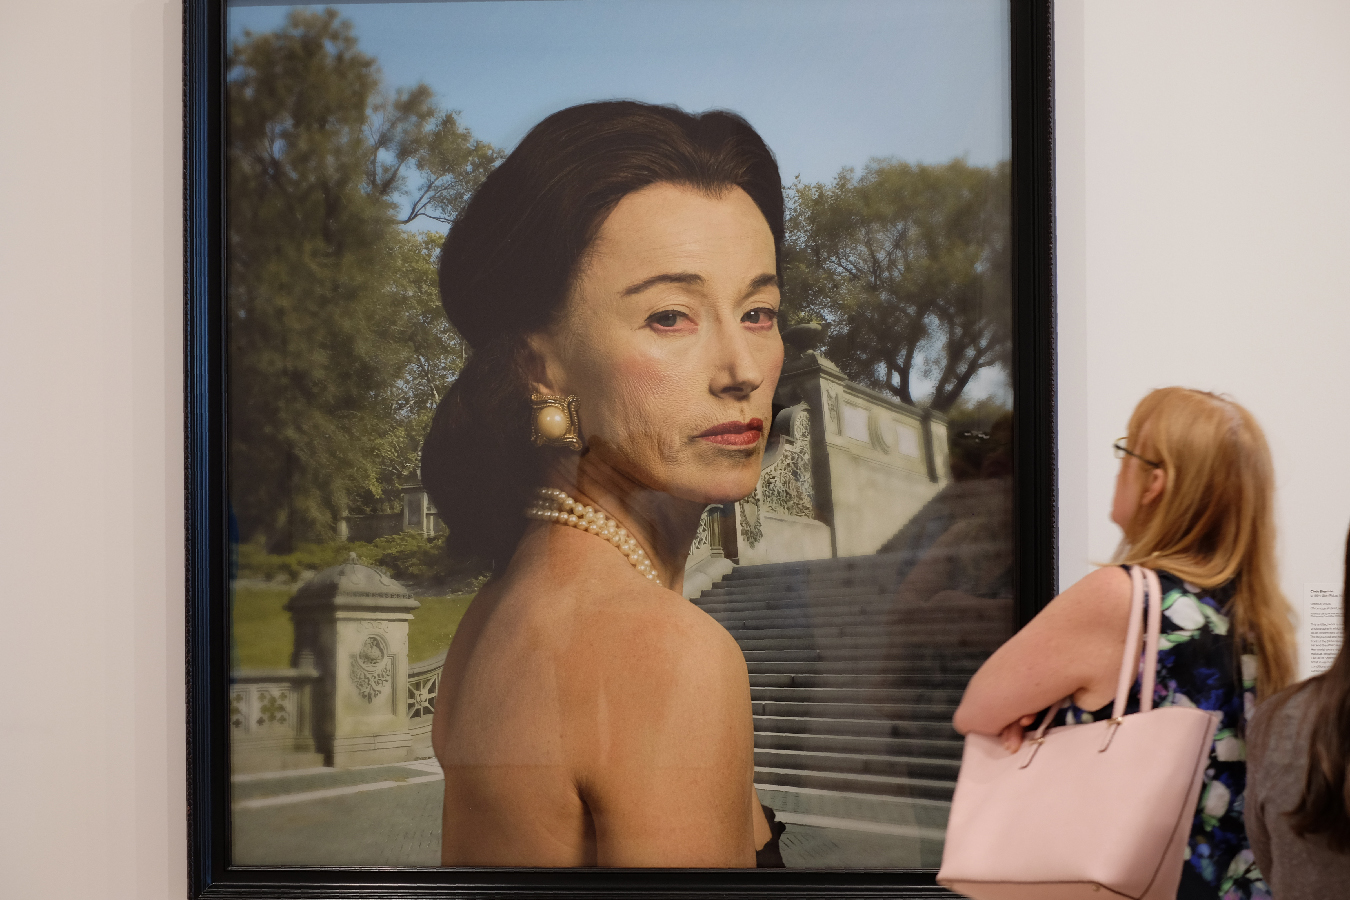 Cindy Sherman is dismissive and haunting.